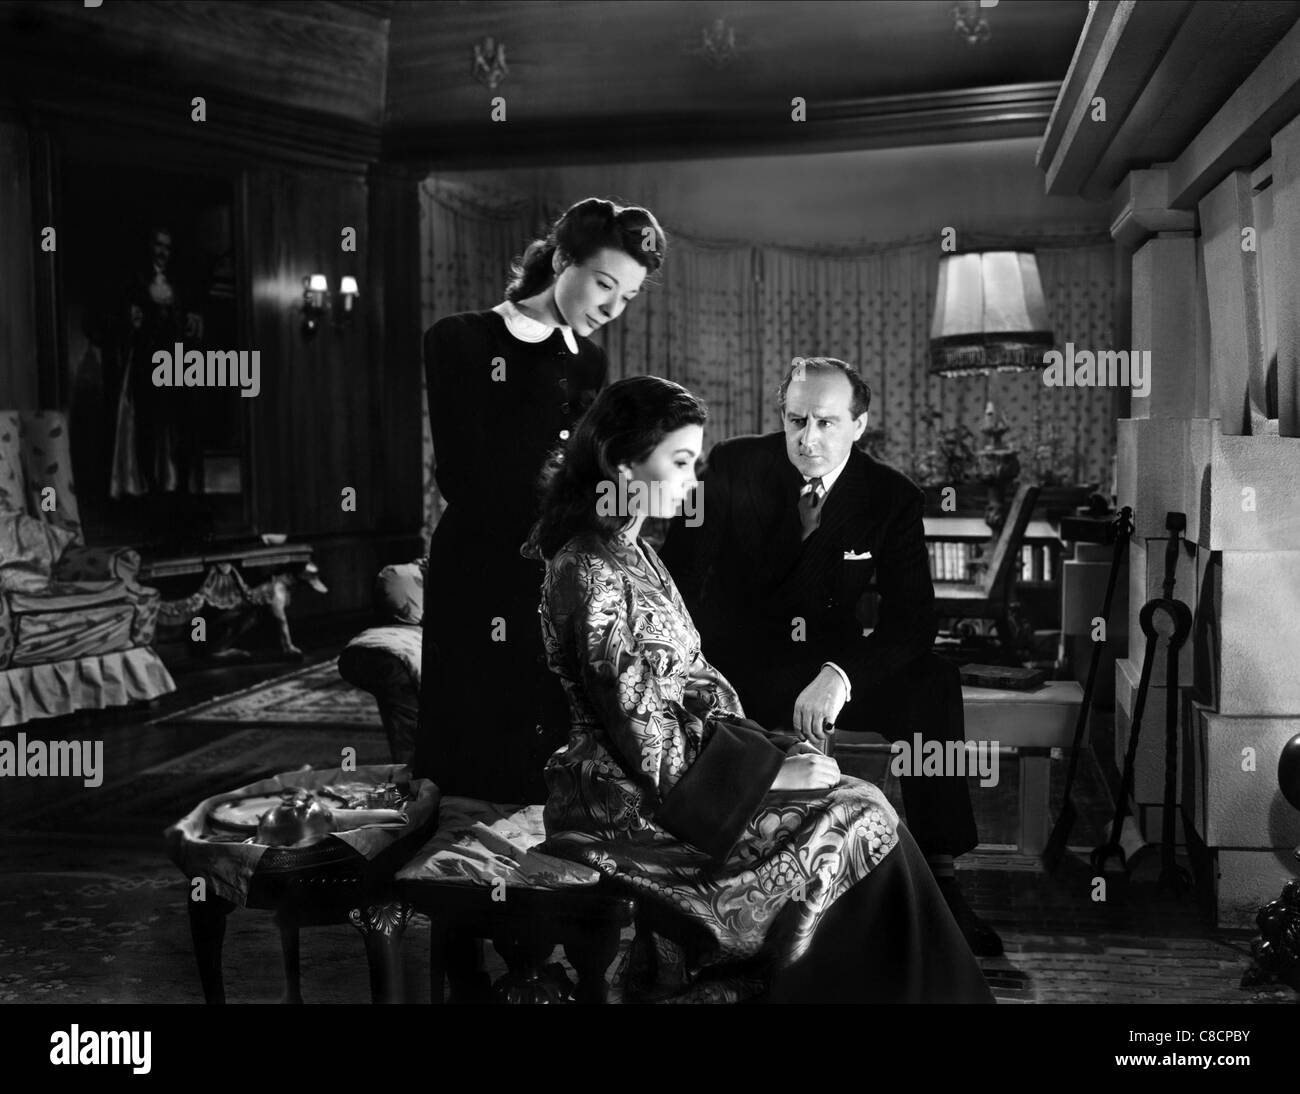 JOAN MILLER, JEAN SIMMONS, CECIL PARKER, THE WOMAN IN THE HALL, 1947 - Stock Image